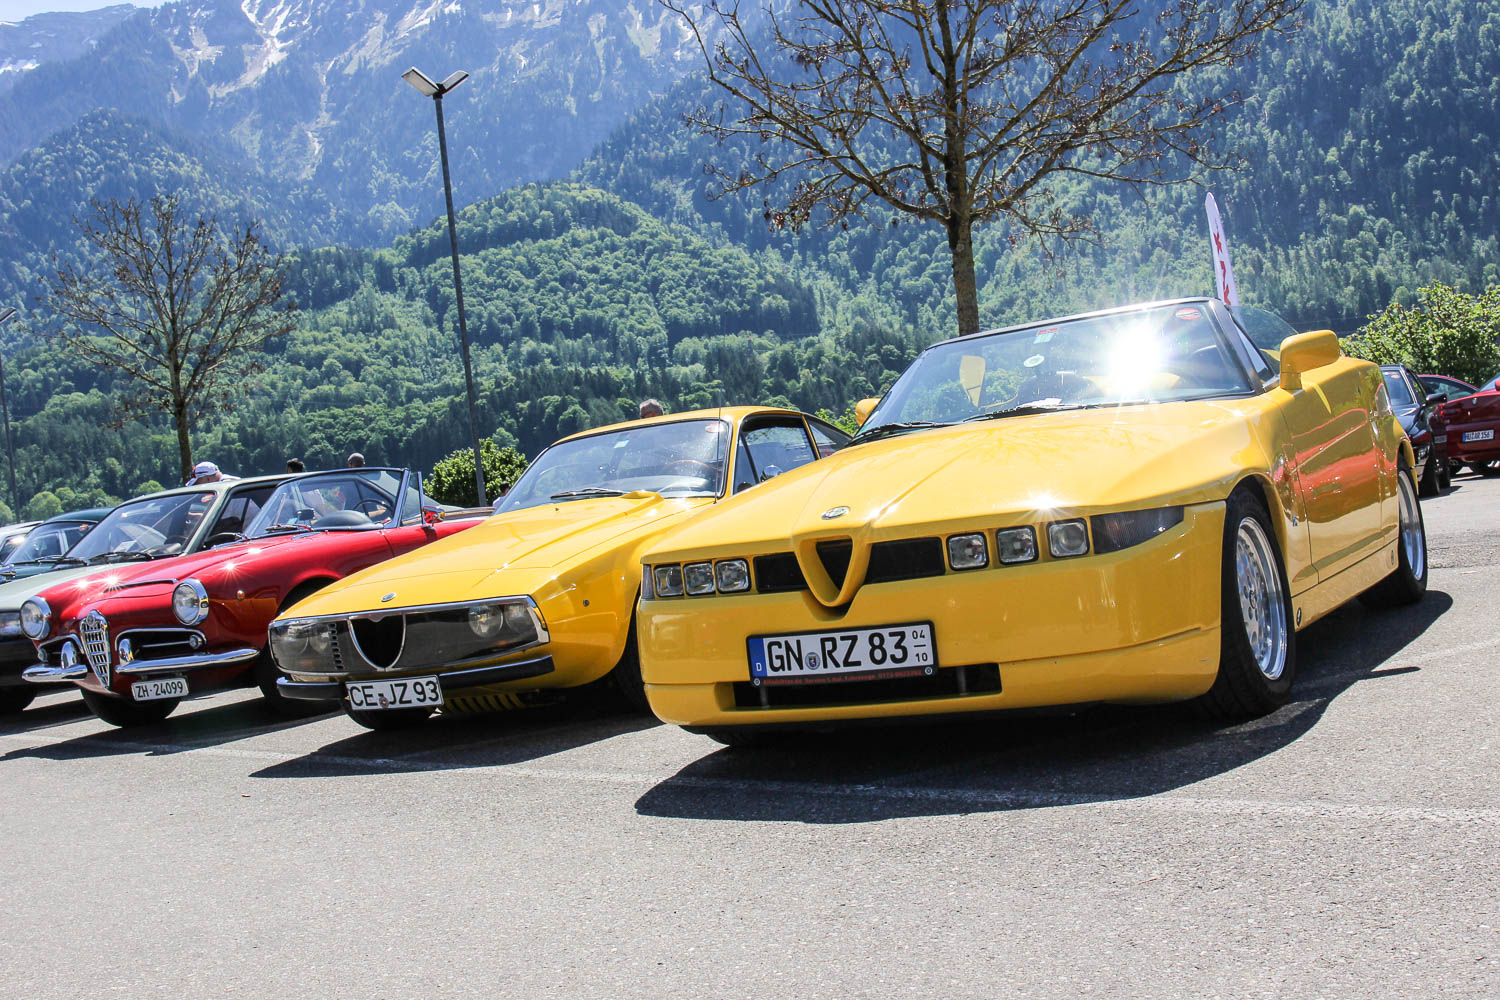 Der Alfadoktor beim Alfa Romeo Passion Meeting in Interlaken (CH)